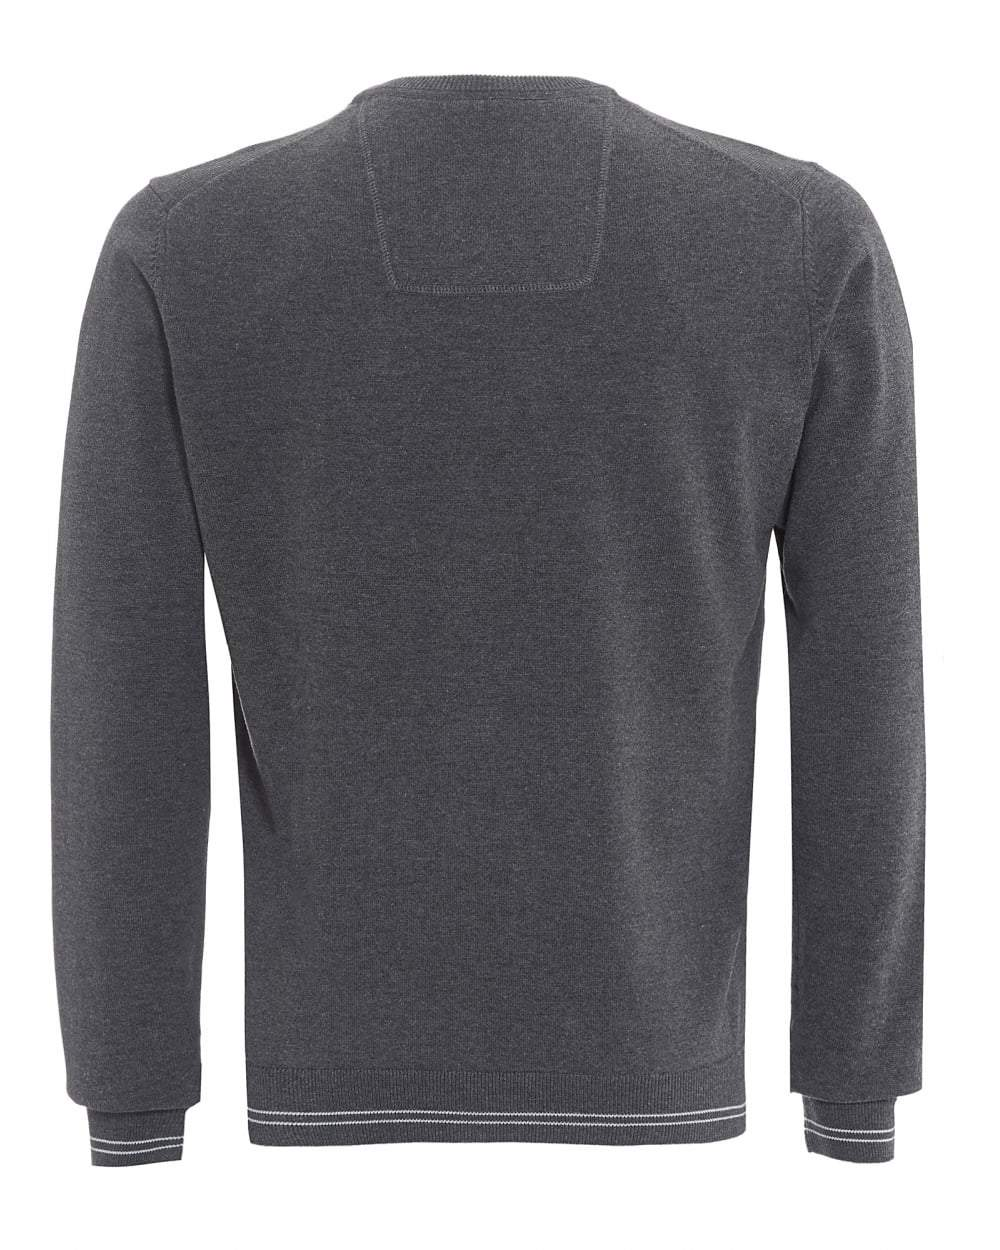 BOSS Athleisure Rime Regular Fit Sweatshirt in Grey